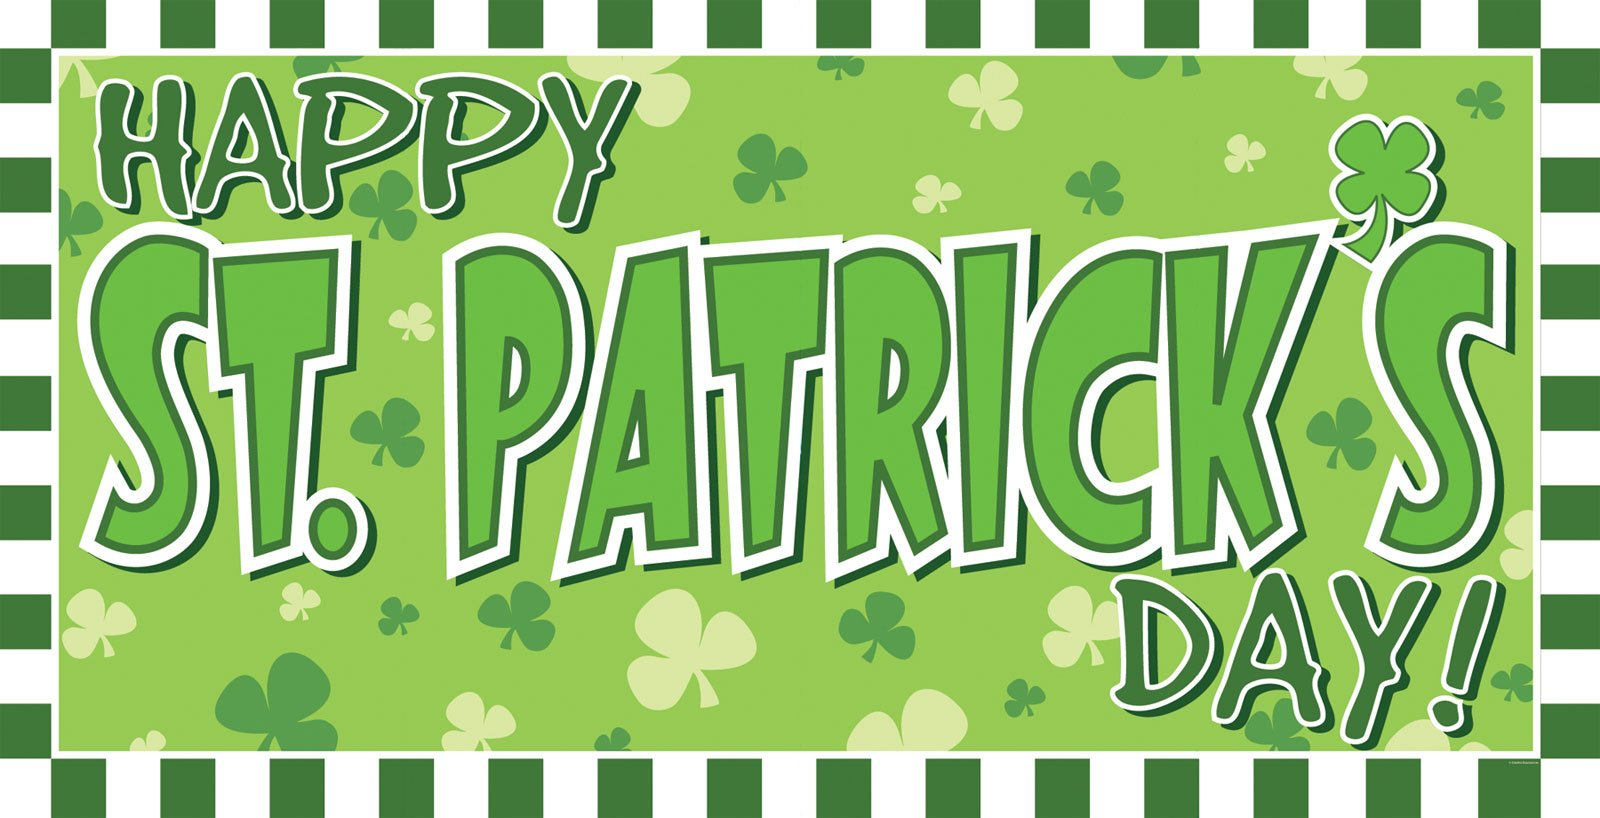 HAPPY ST PATRICKS DAY 2010 PUMABydesign001s Blog